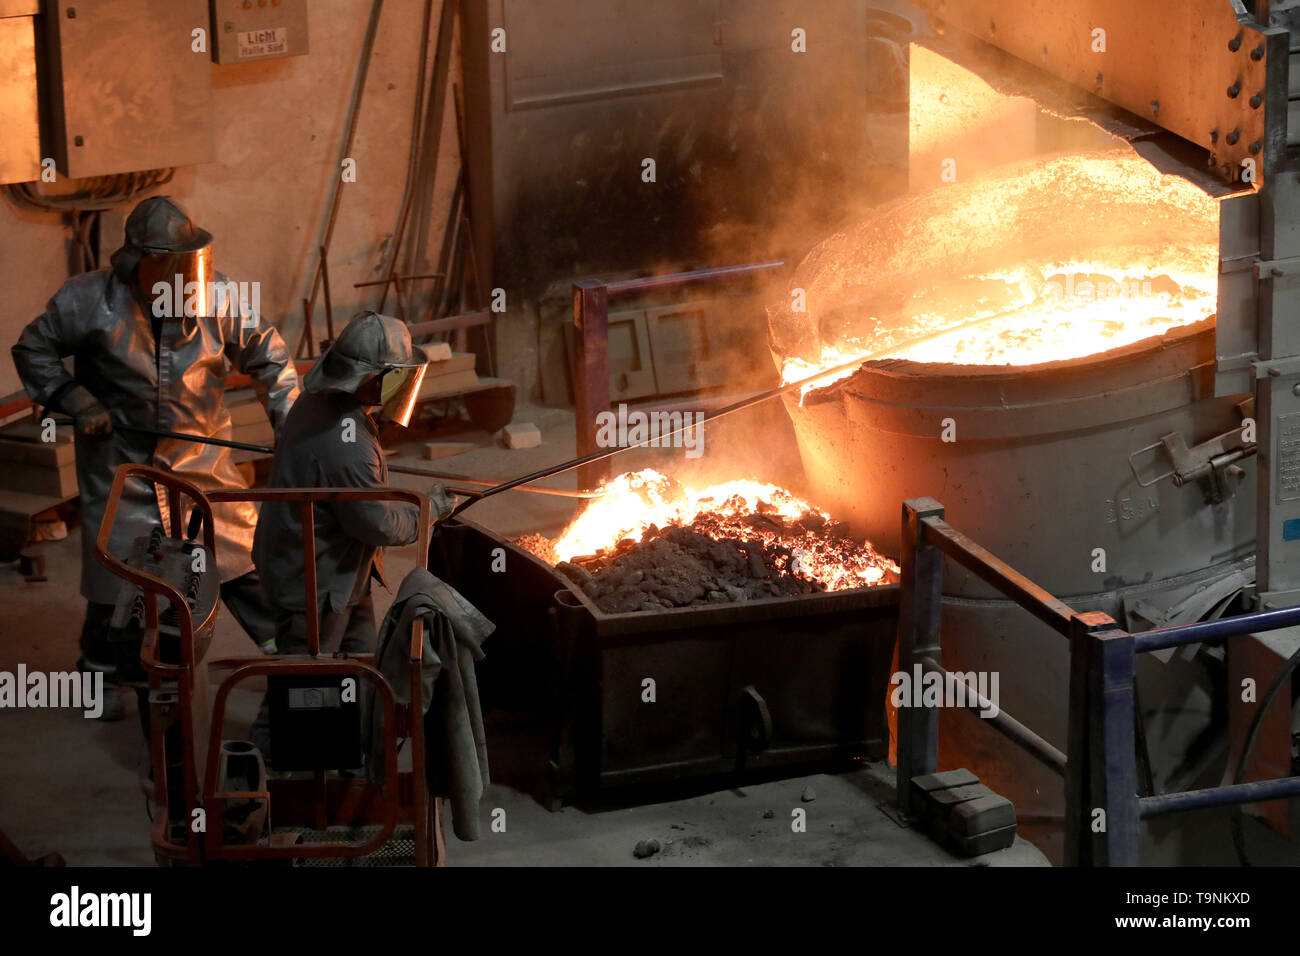 08 May 2019, Mecklenburg-Western Pomerania, Waren: In the foundry of Mecklenburger Metallguss GmbH MMG the slag is removed from the aluminium bronze before casting a large ship propeller. A total of 165 tons of material with a temperature of about 1,170 degrees is poured into a mold. The propeller for a large Korean container freighter will later have a diameter of 10.40 meters and weigh 117 tons. Less than a year after its transition to independence, MMG sees itself on the upswing again. Sales of 50 million euros are expected for 2019, about ten million euros more than in 2018. Photo: Bernd W - Stock Image